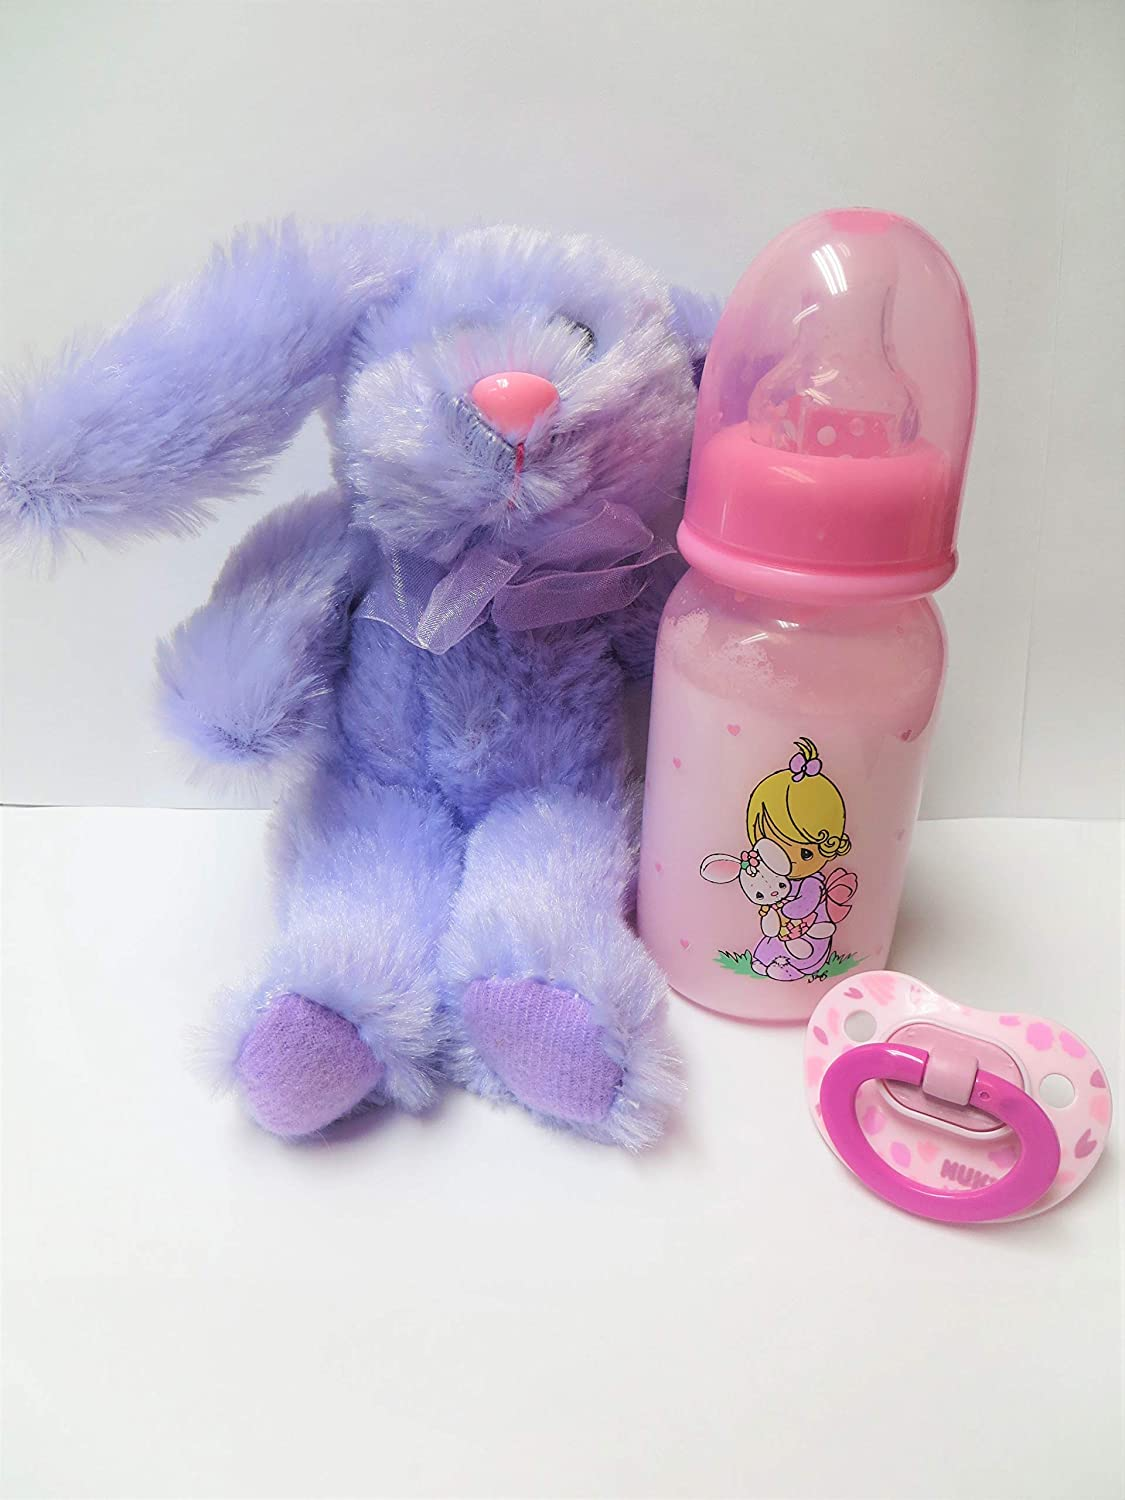 Reborn Doll Bottle Bunny Limited price sale + Colors Las Vegas Mall Plus Coordin Pacifier Vary